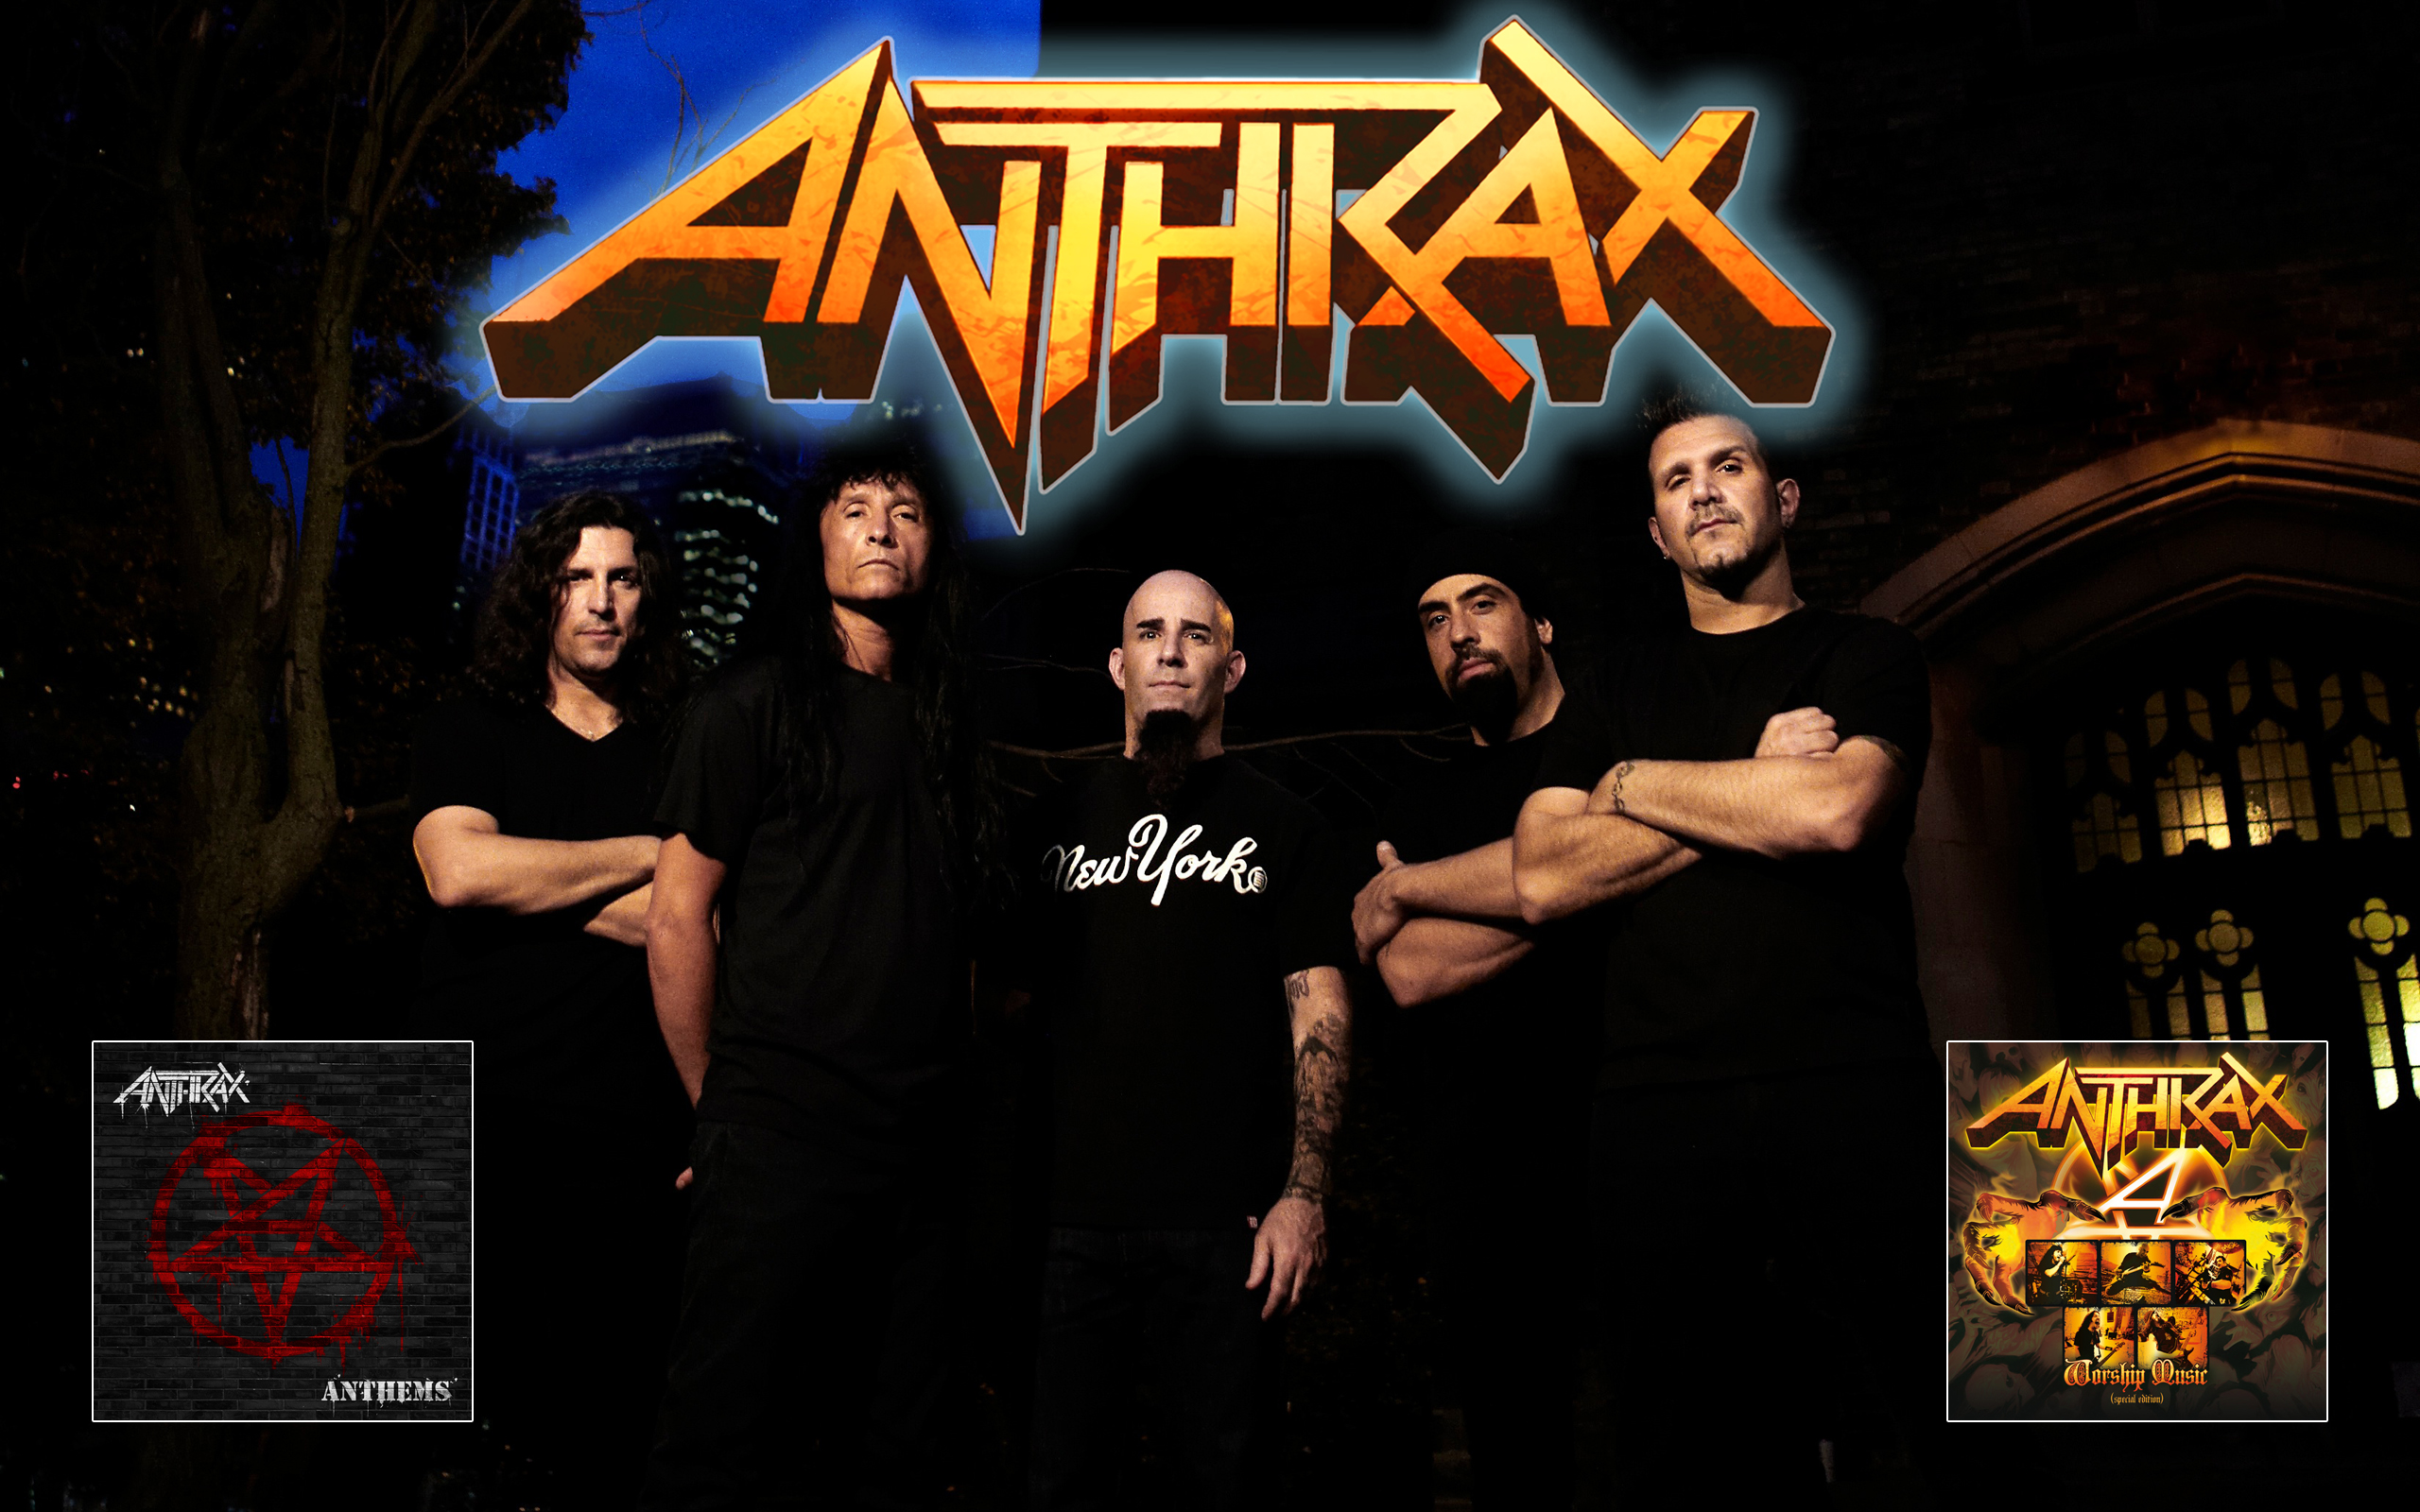 Galaxy S3 Quotes Wallpaper Download Anthrax Band Wallpaper Gallery